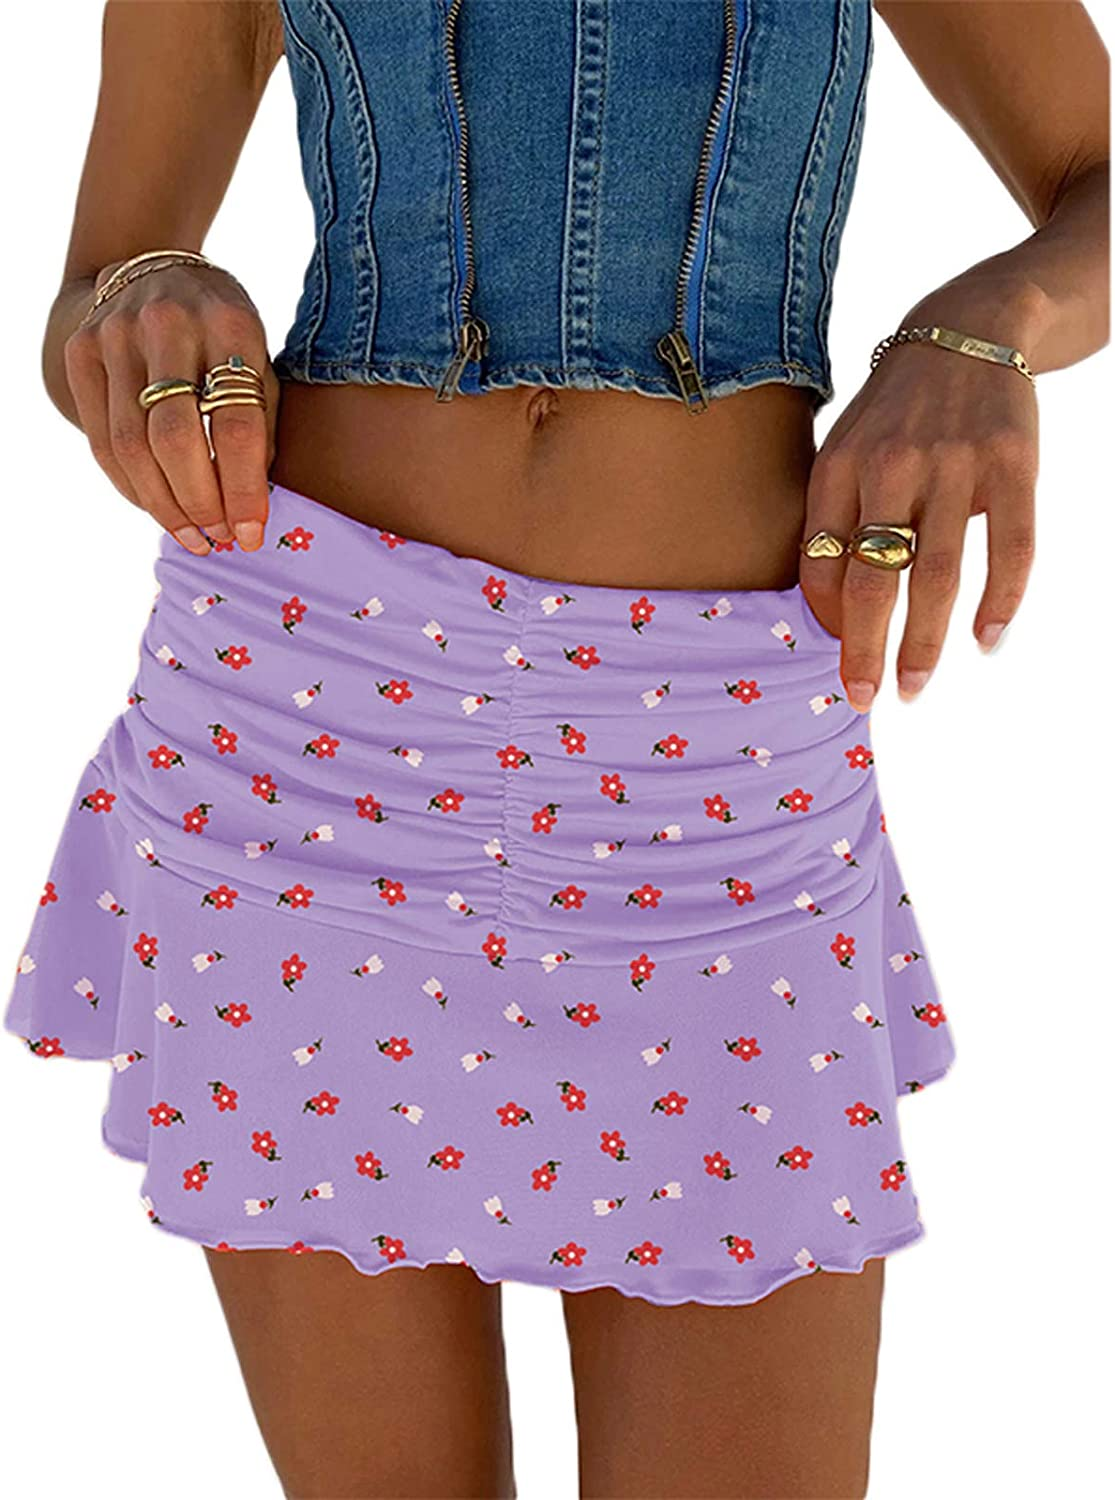 Women Y2K Ruched Ruffle Mini Skirt Casual E-Girl 90s A-line Pleated Skirts Athletic Tennis Skirts